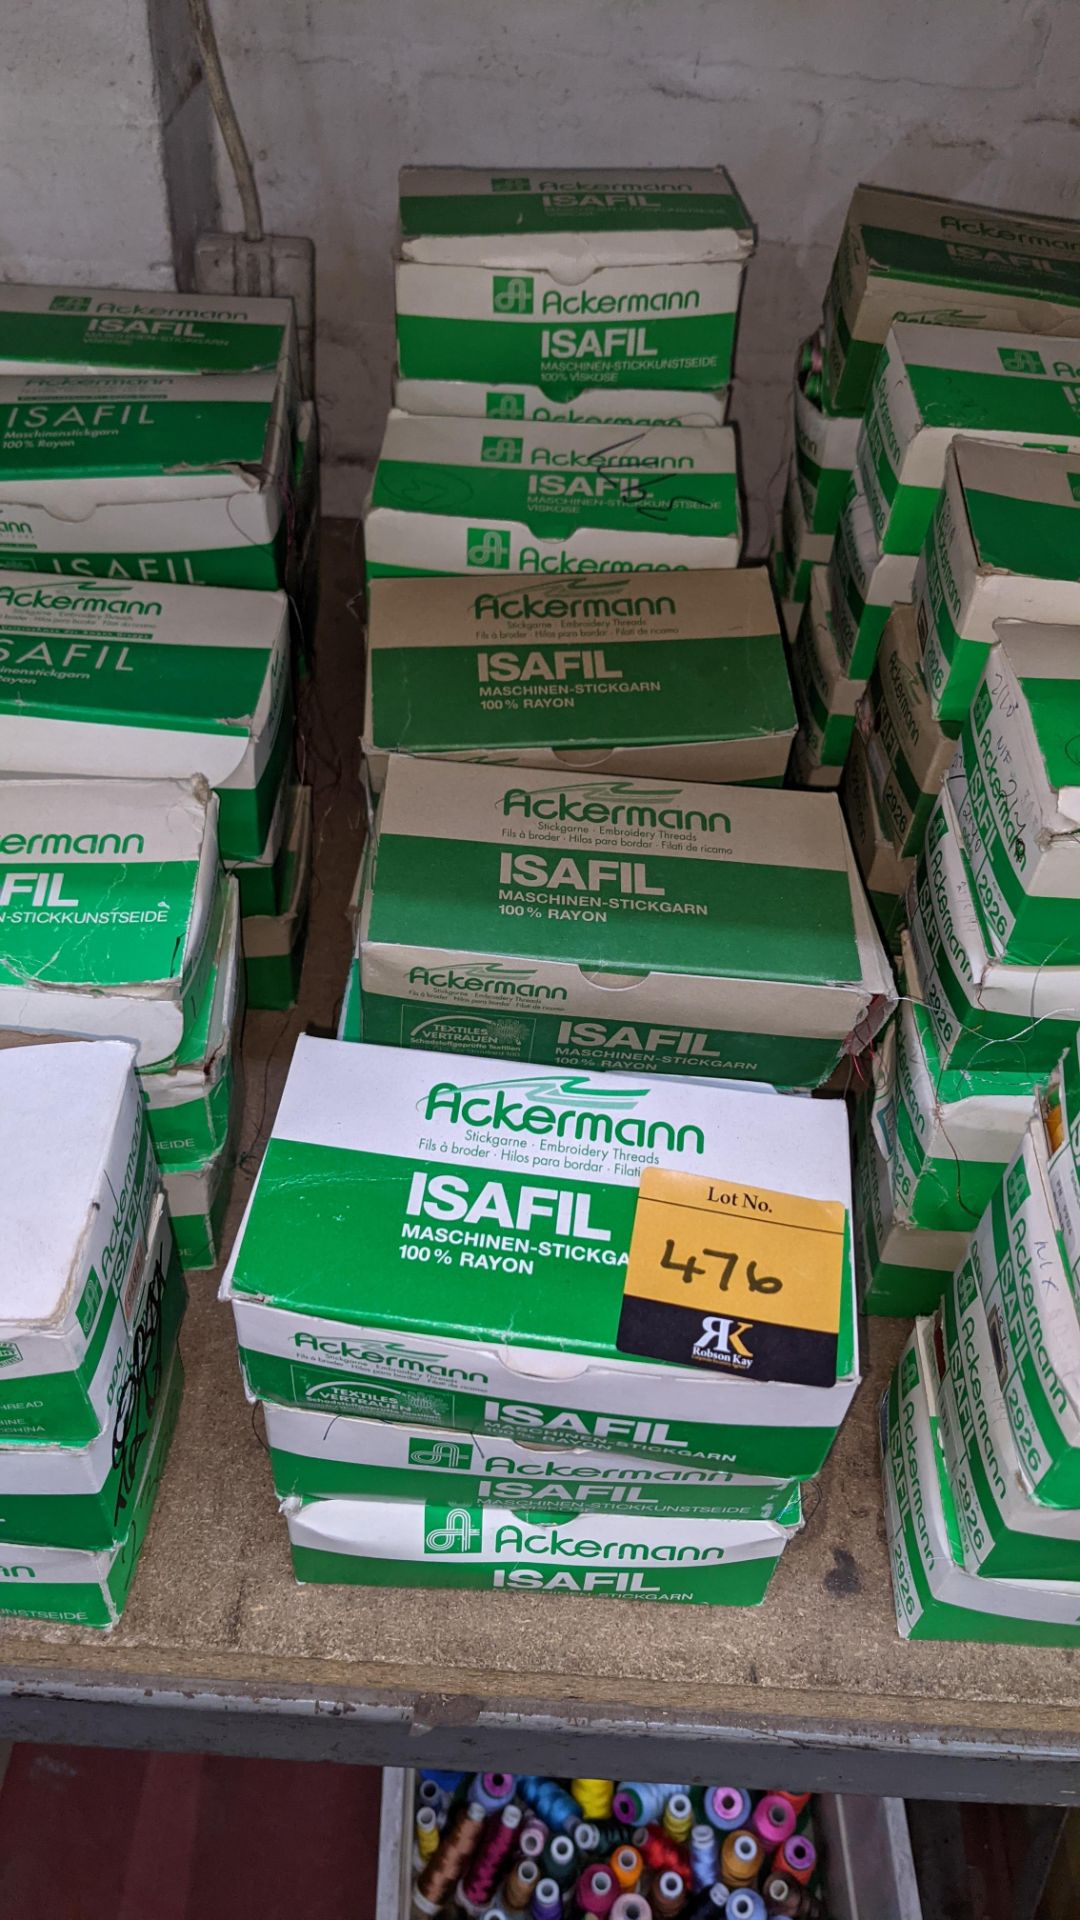 16 boxes of Ackermann Isafil viscose/rayon embroidery thread